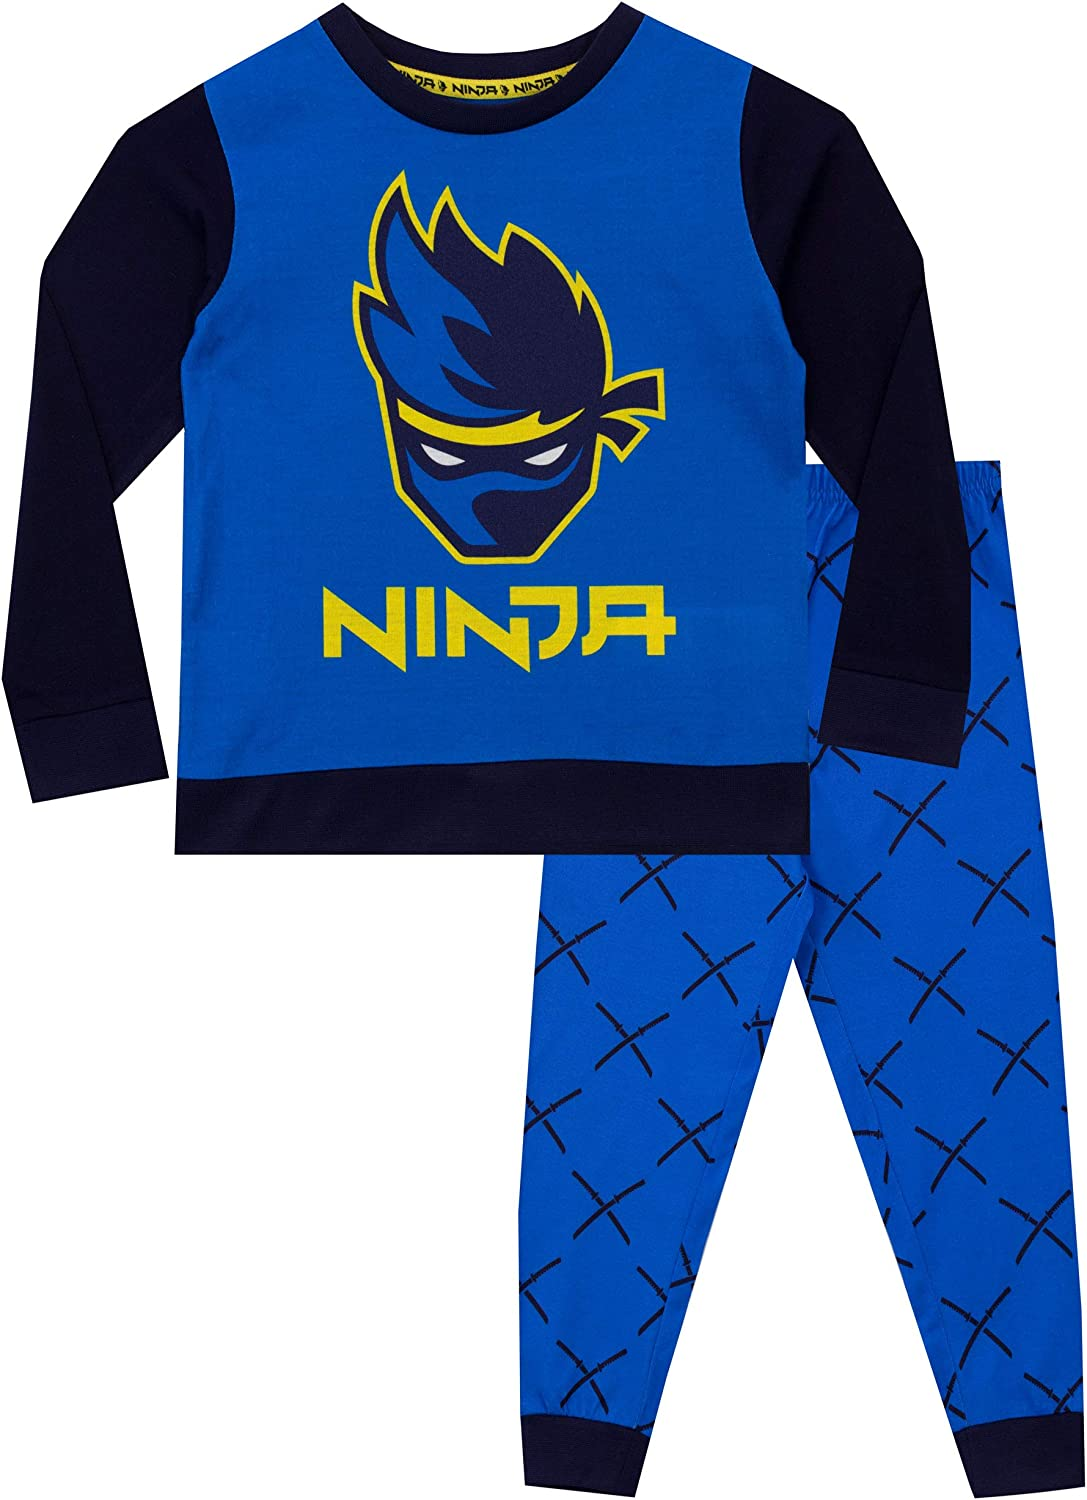 Ninja Boys Pajamas